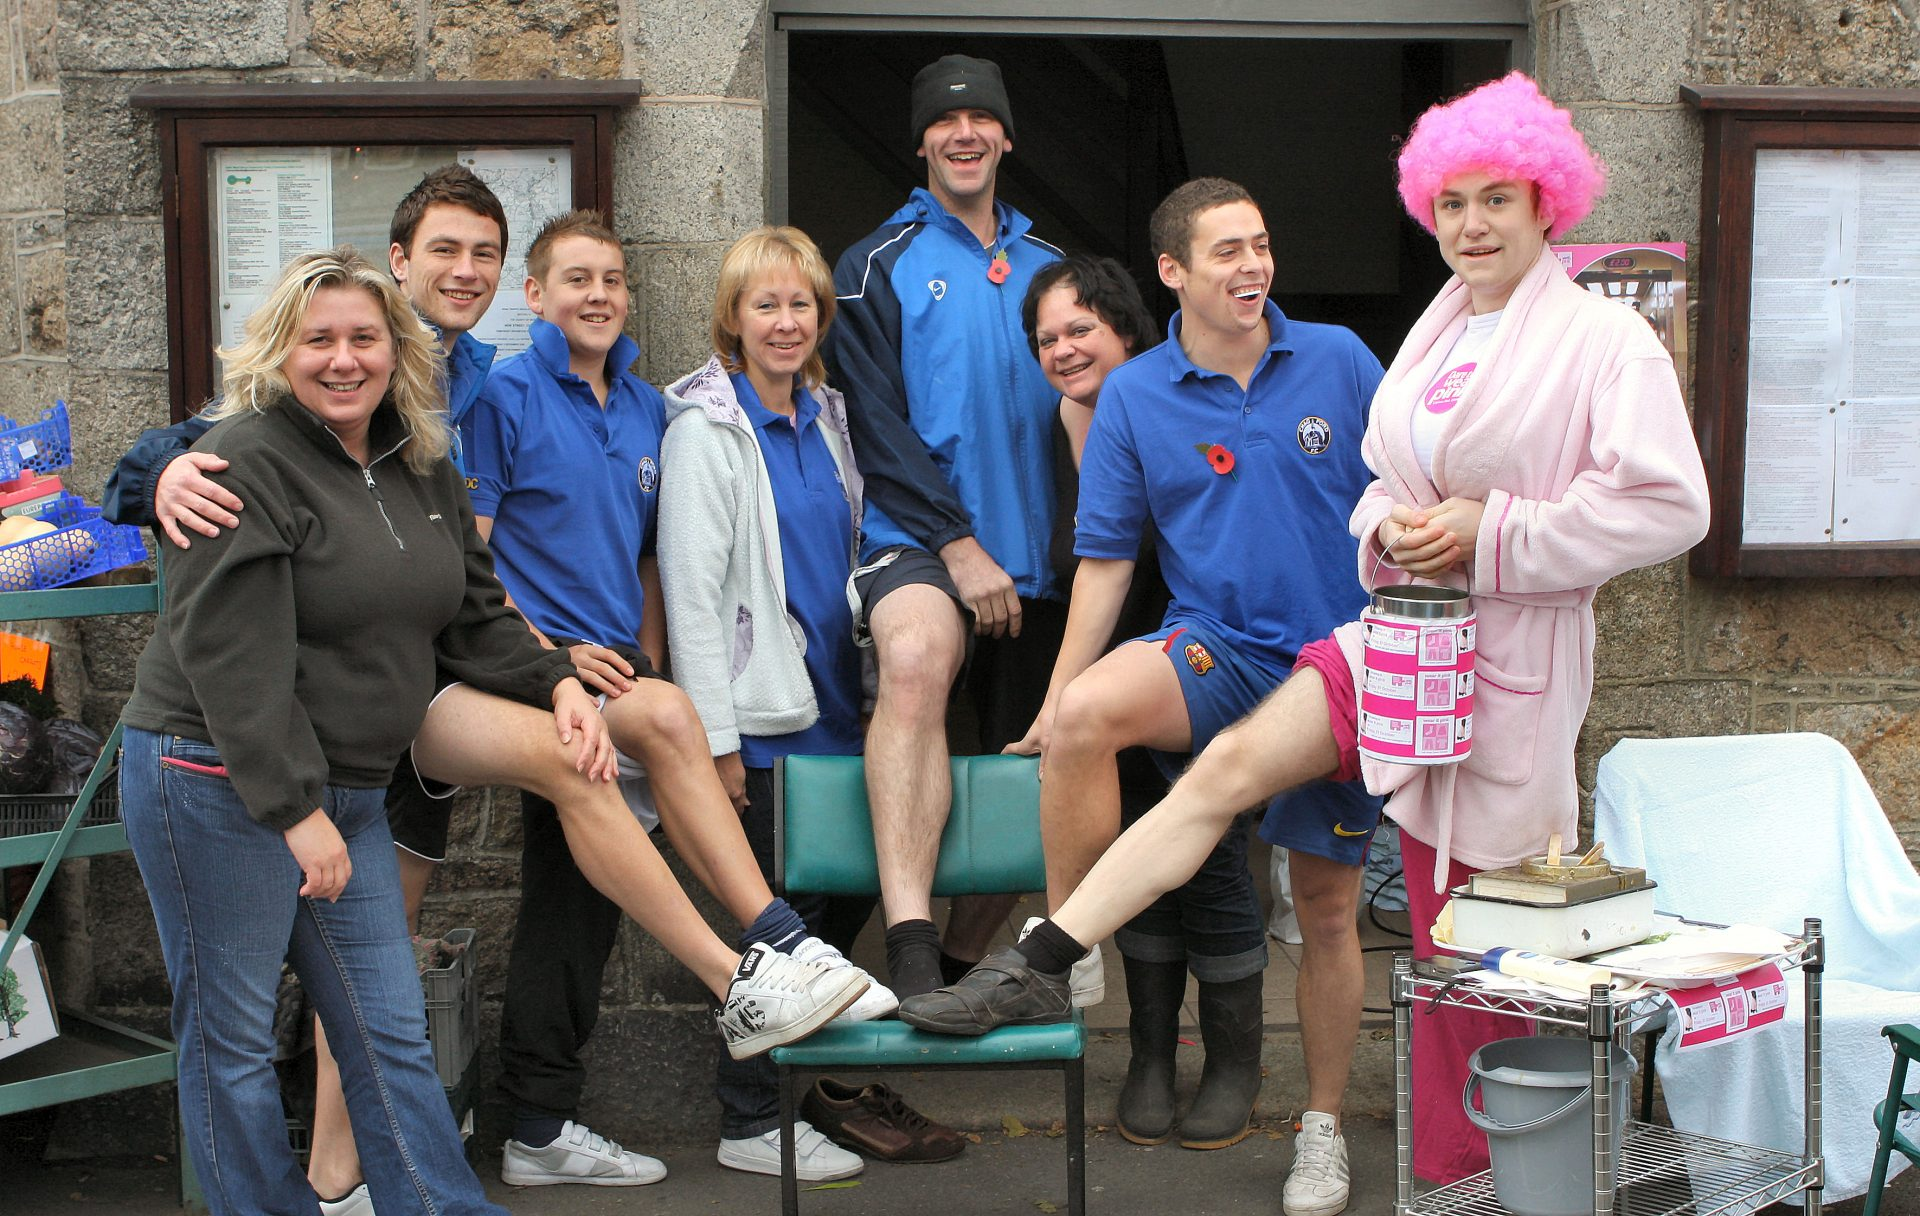 Leg shave for charity. I think for Breast Cancer Awareness.